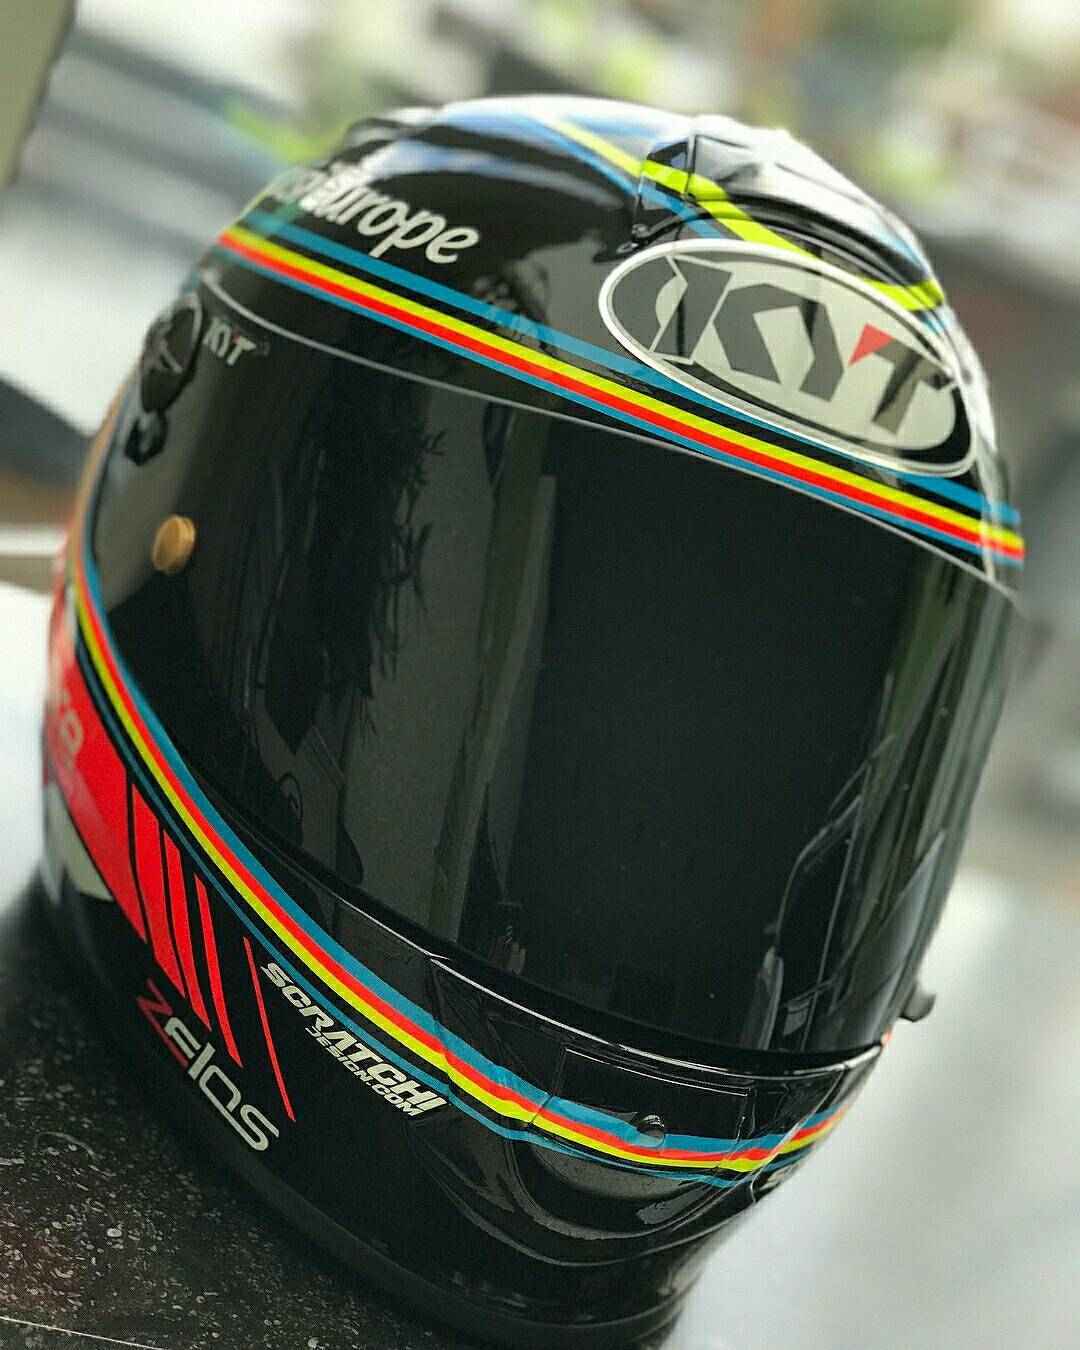 Source: Racing Helmets Garage